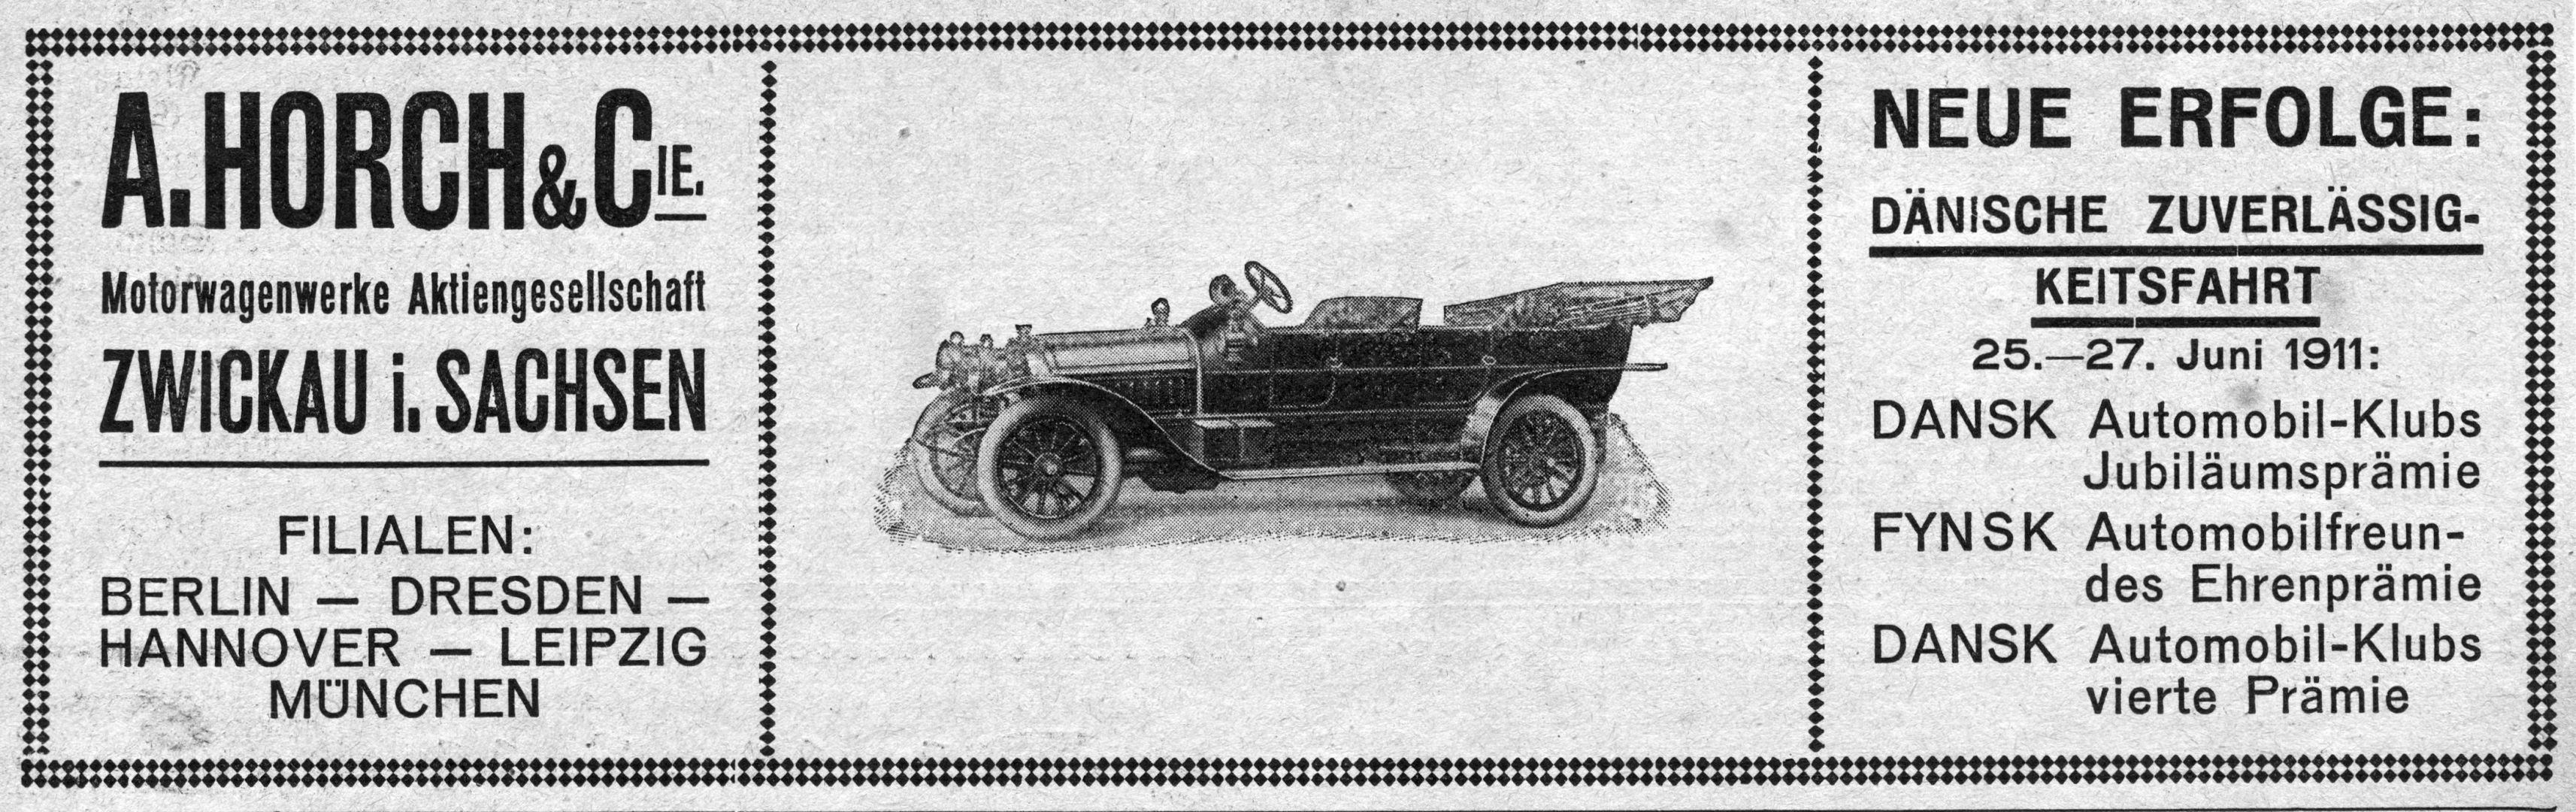 horch-reklame_07-1911_galerie